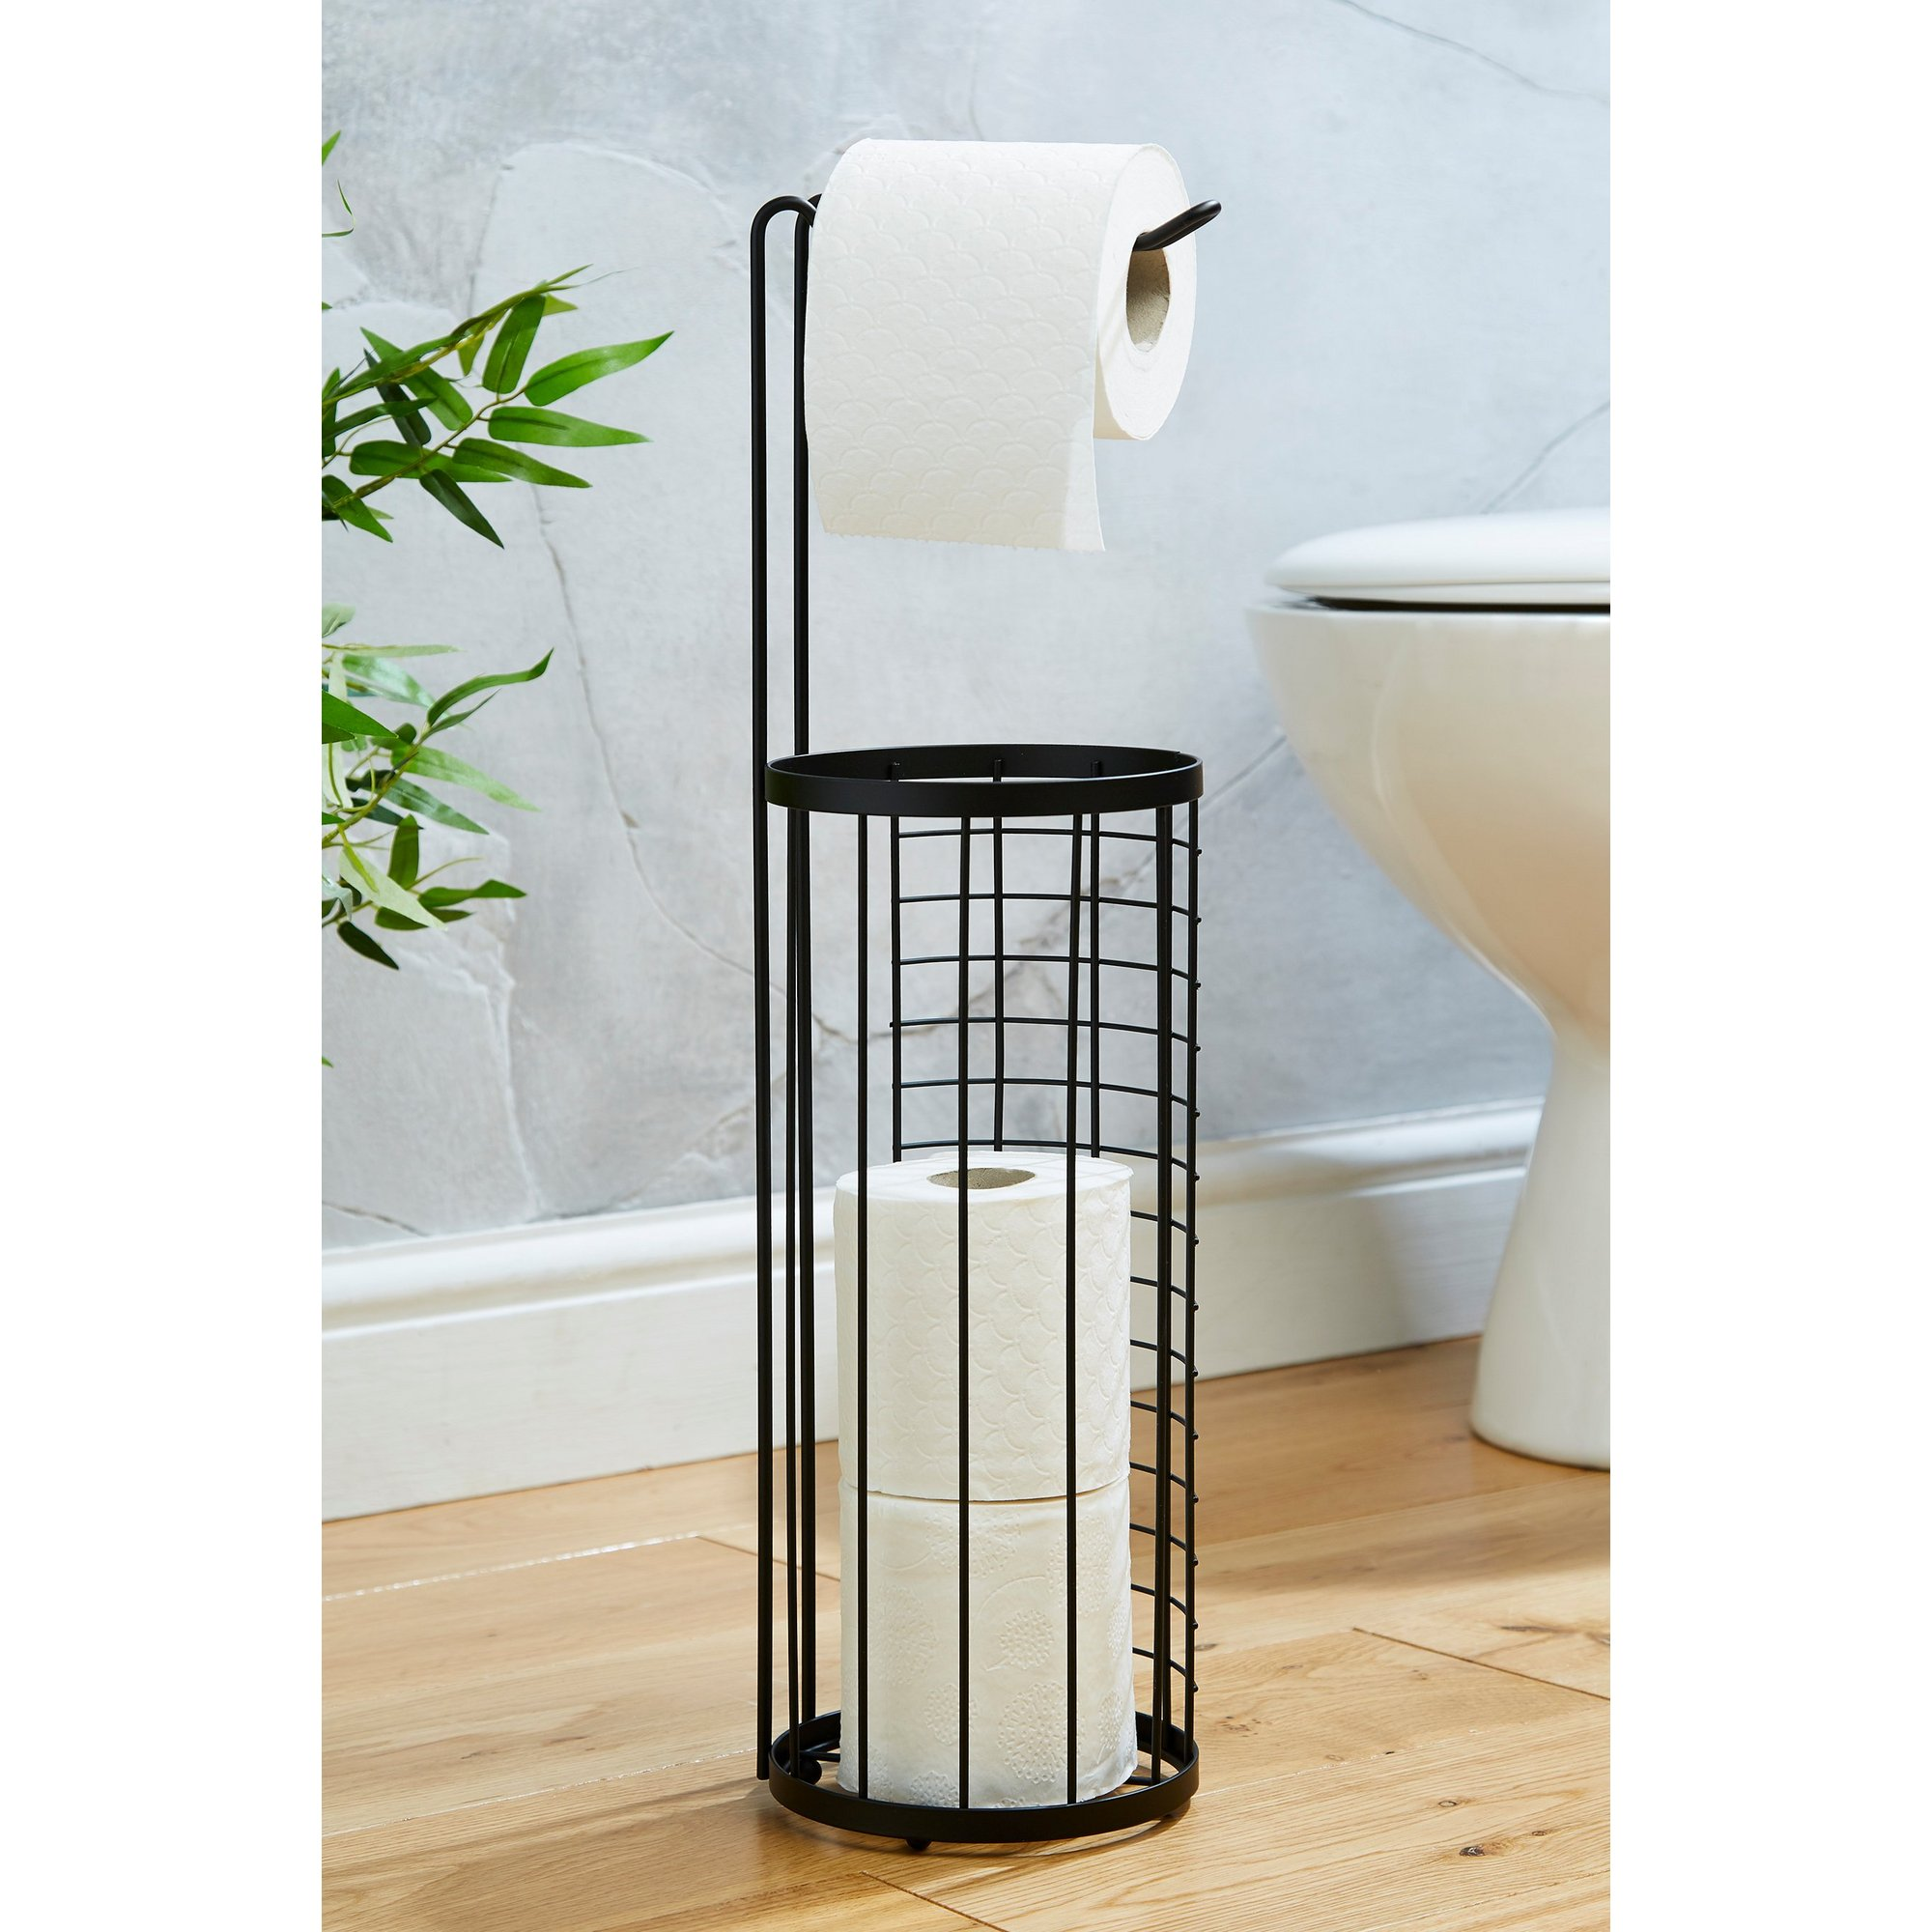 Image of Black Wire Toilet Roll Holder